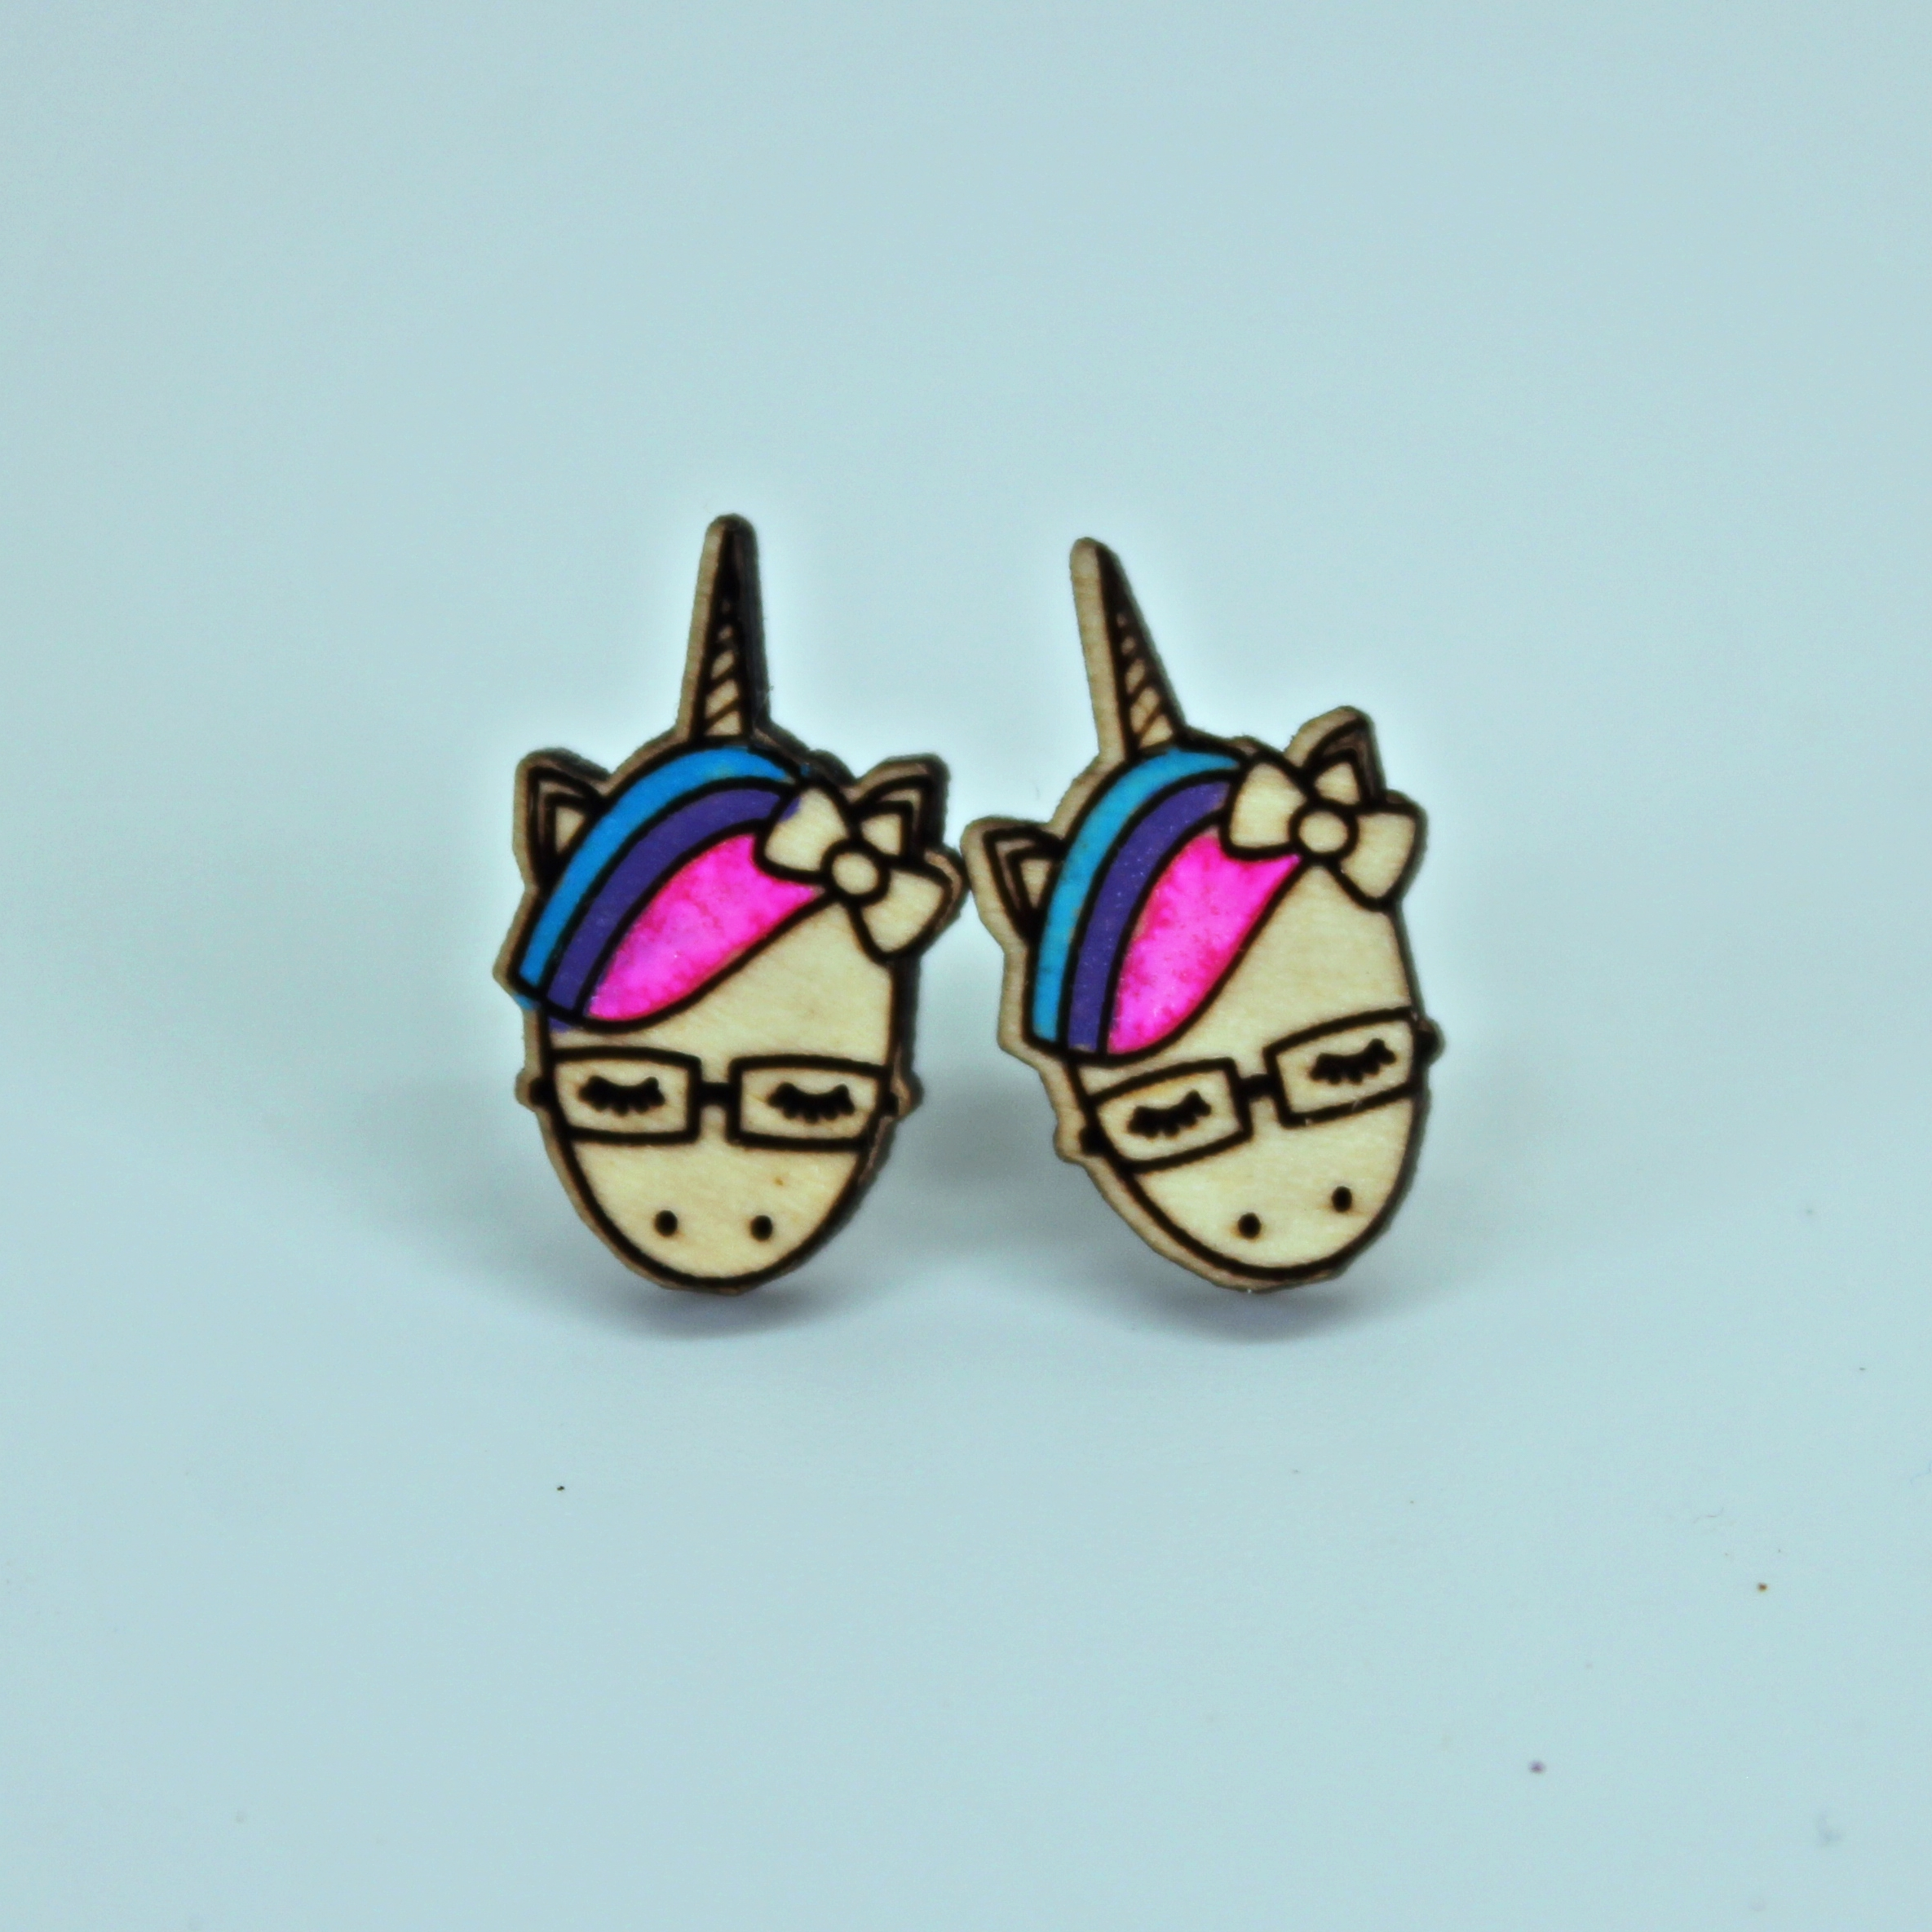 Handcrafted, wooden, Unicorn with glasses Stud Earrings by Sensory Box Family